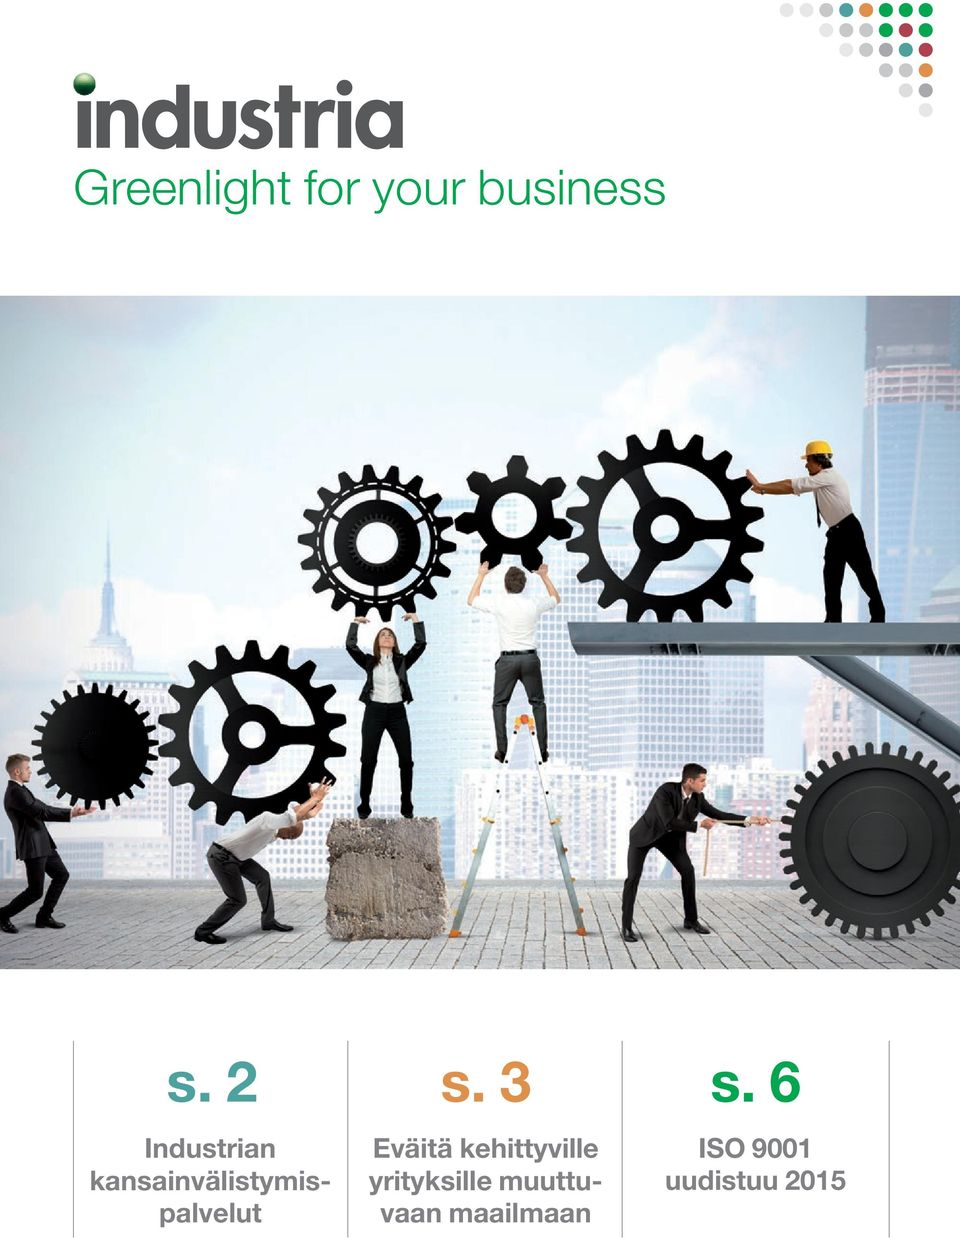 3 s. 6 Green light for your business ISO 9001 Eväitä